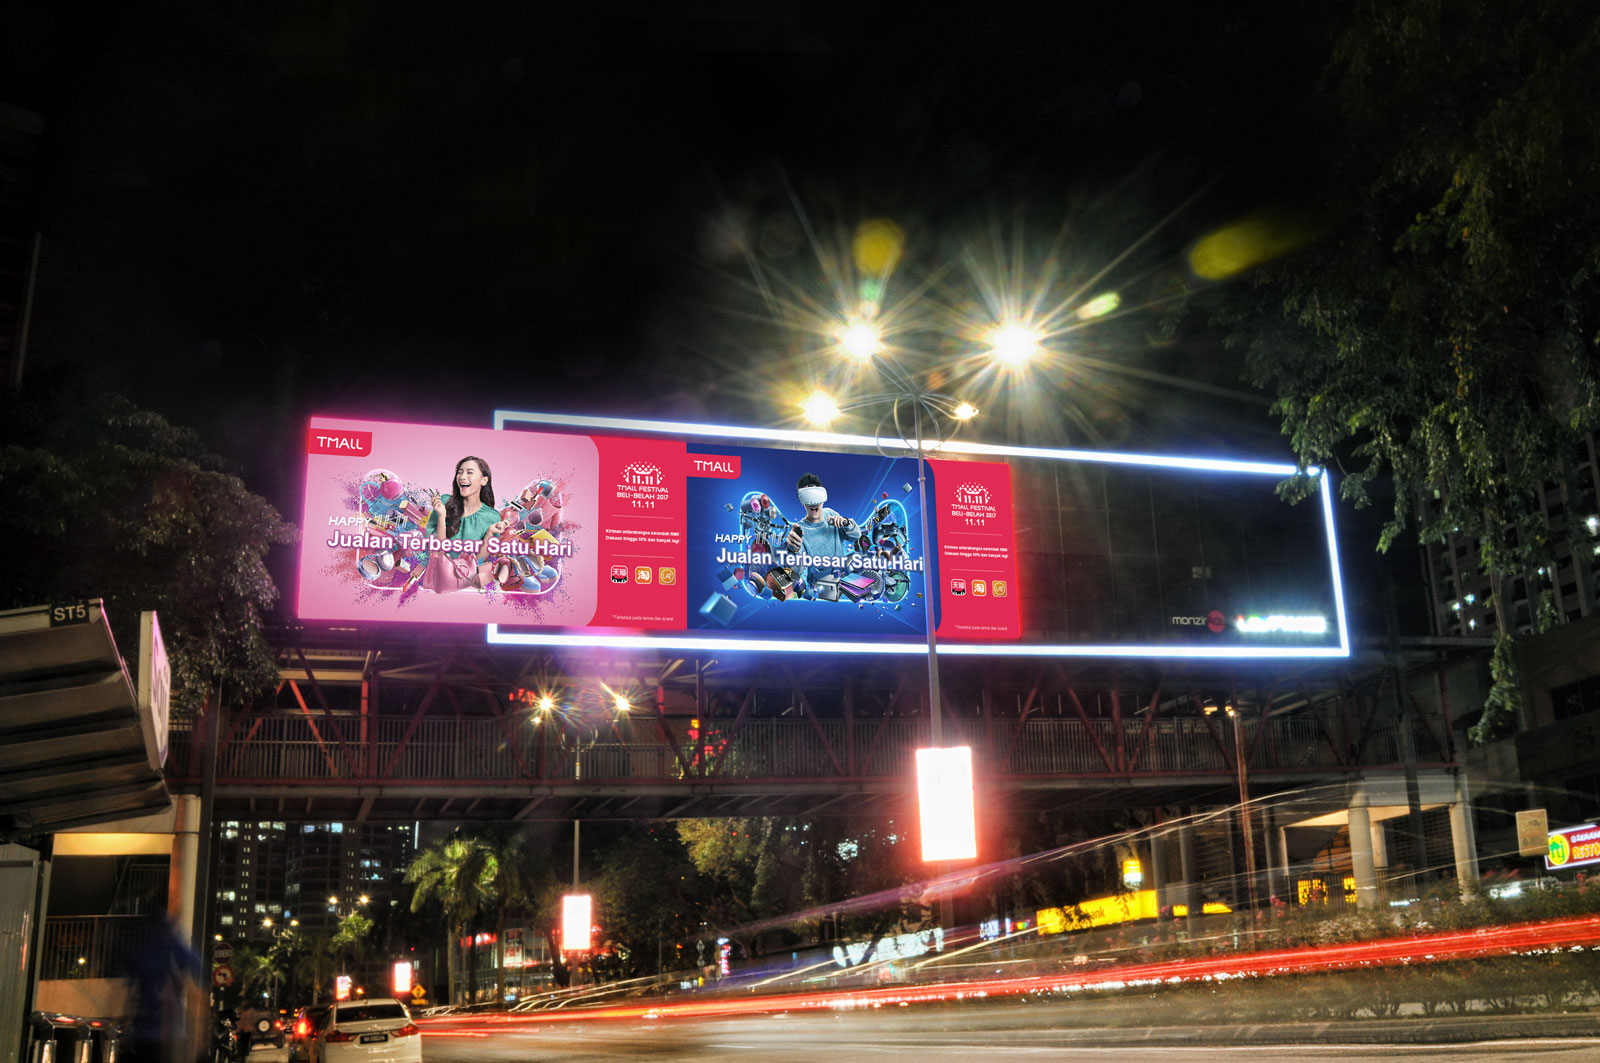 Jalan Semangat Petaling Jaya Ledtronics Led Displays